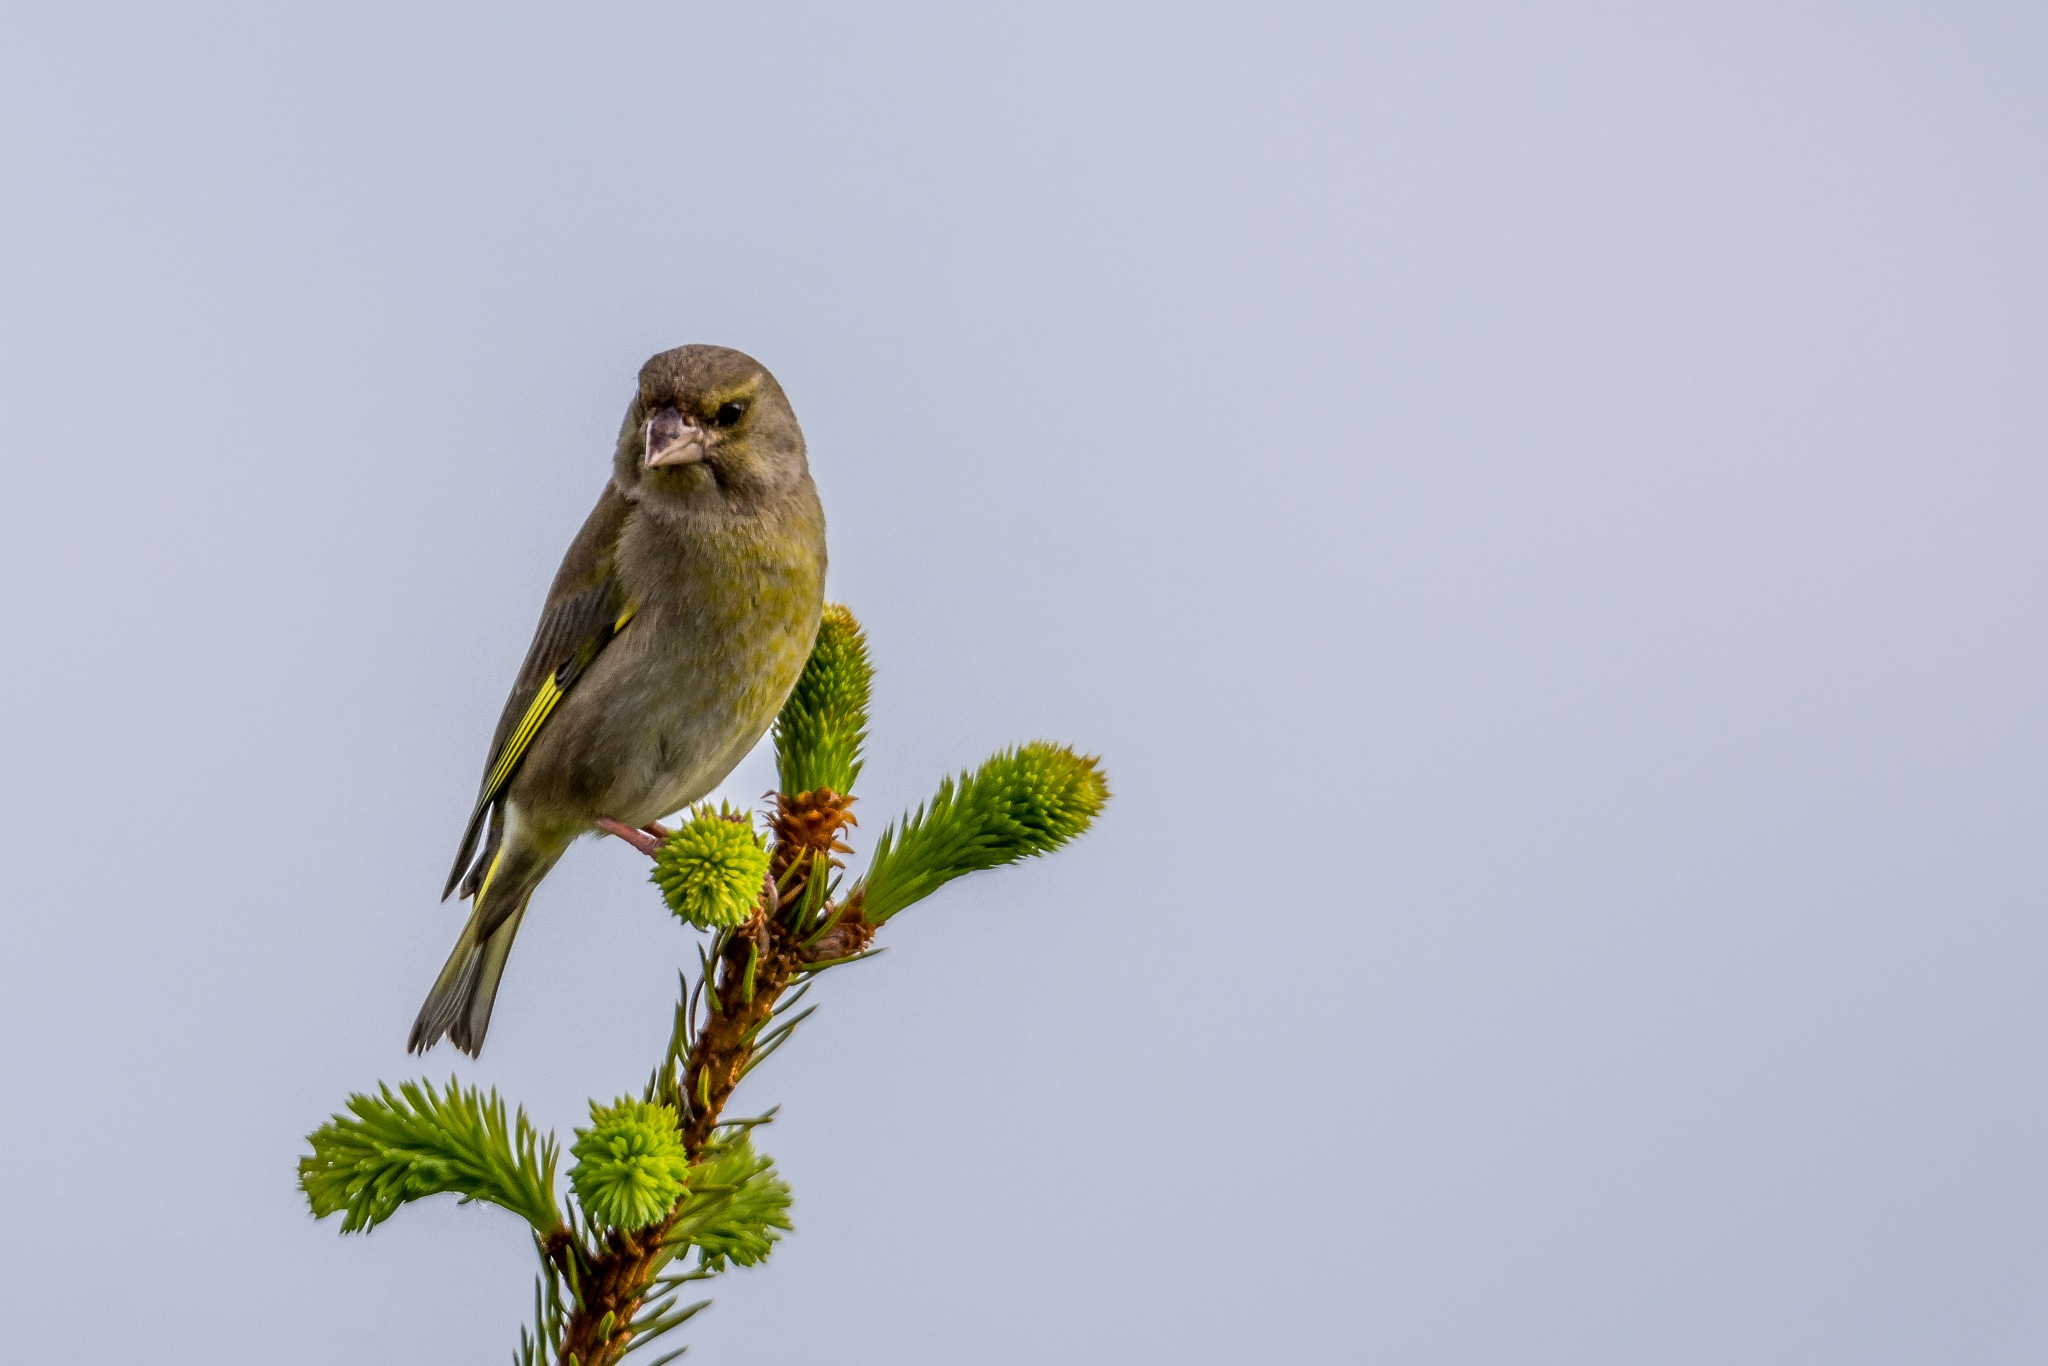 Greenfinch by Alistair Forrest